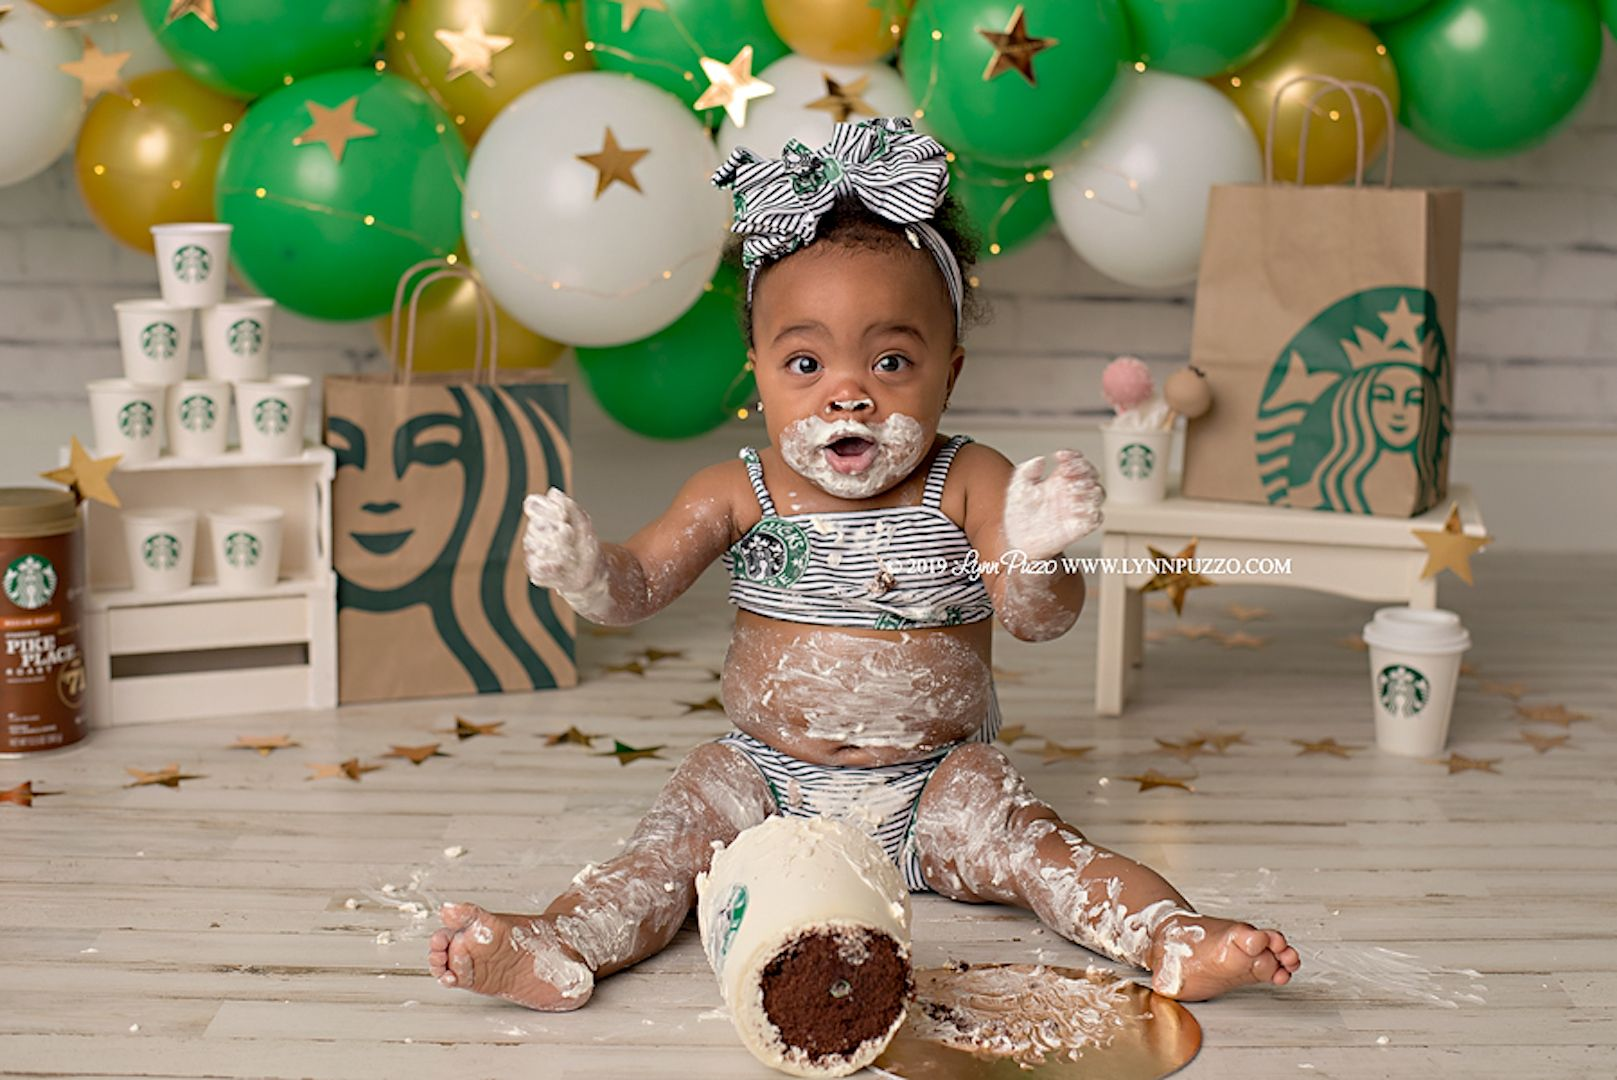 Adorable Starbucks Smash Cake Photoshoot Gives New Meaning to 'Babyccino' #starbuckscake